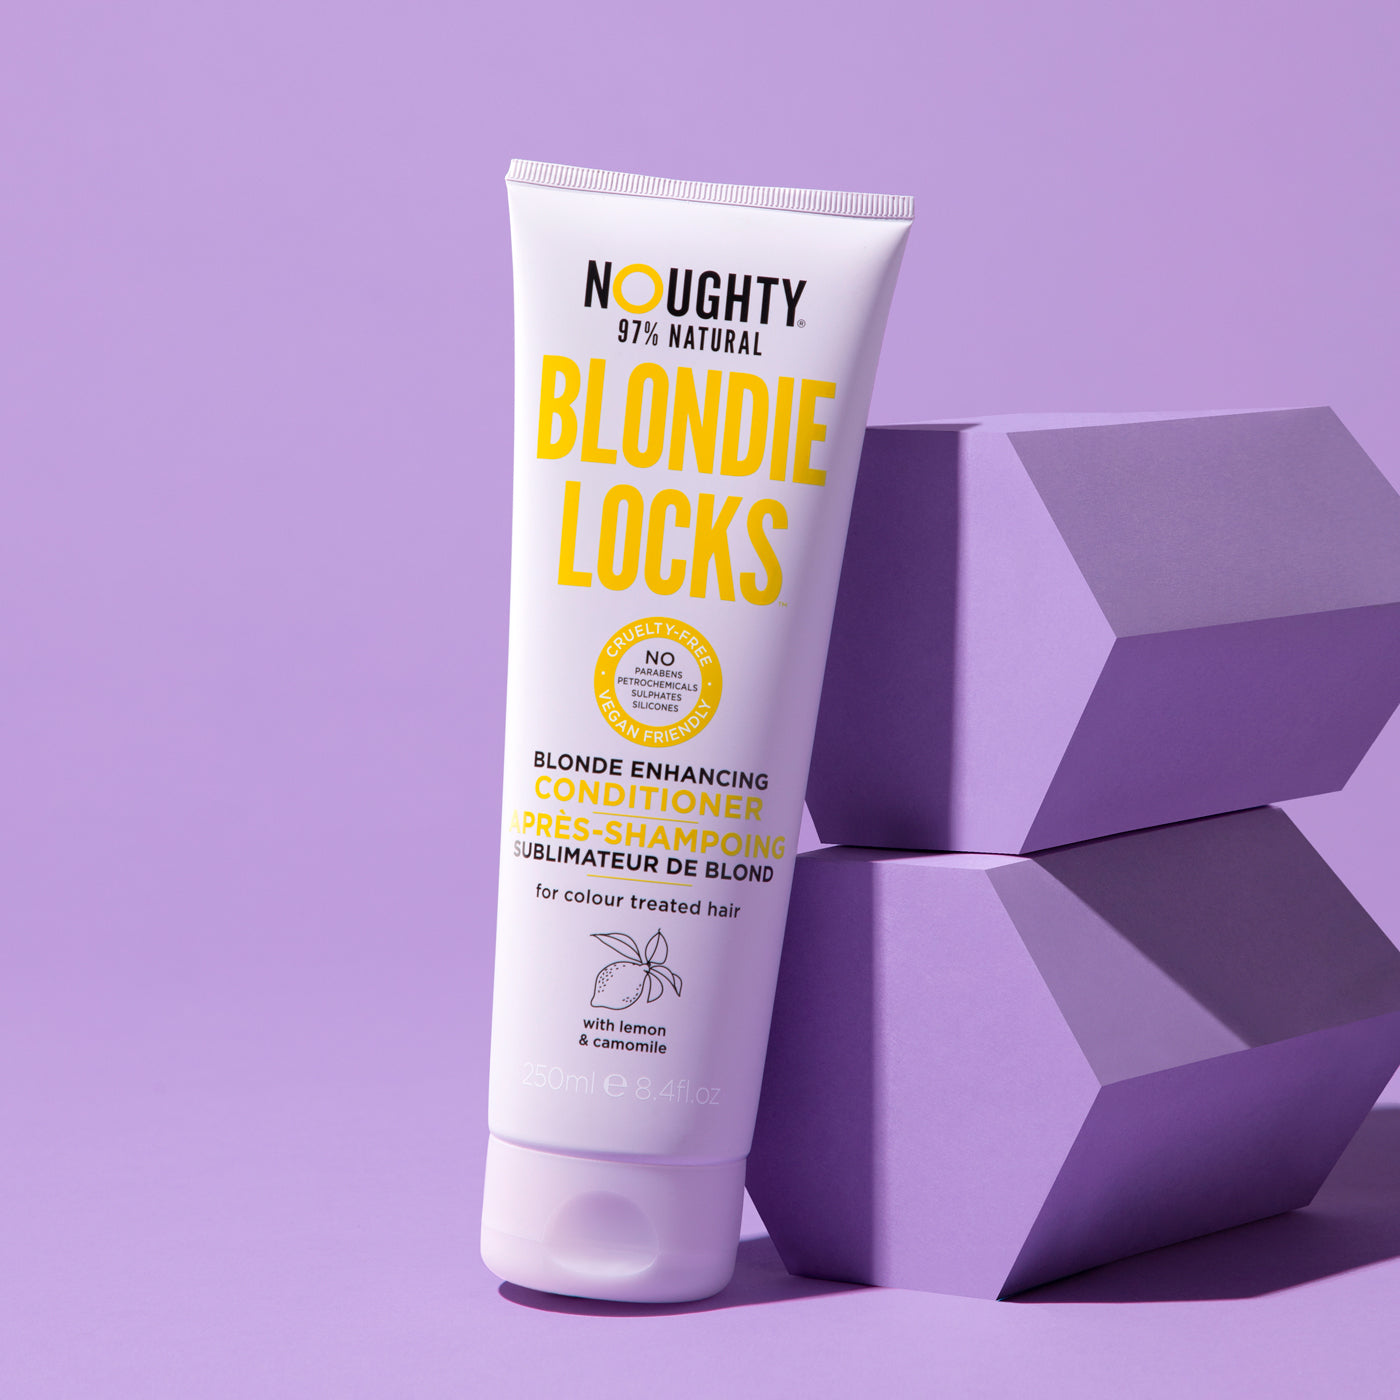 Noughty's blonde enhancing brightening conditioner for blonde bleached highlighted hair. Natural haircare vegan cruelty free natural sulphate free paraben free